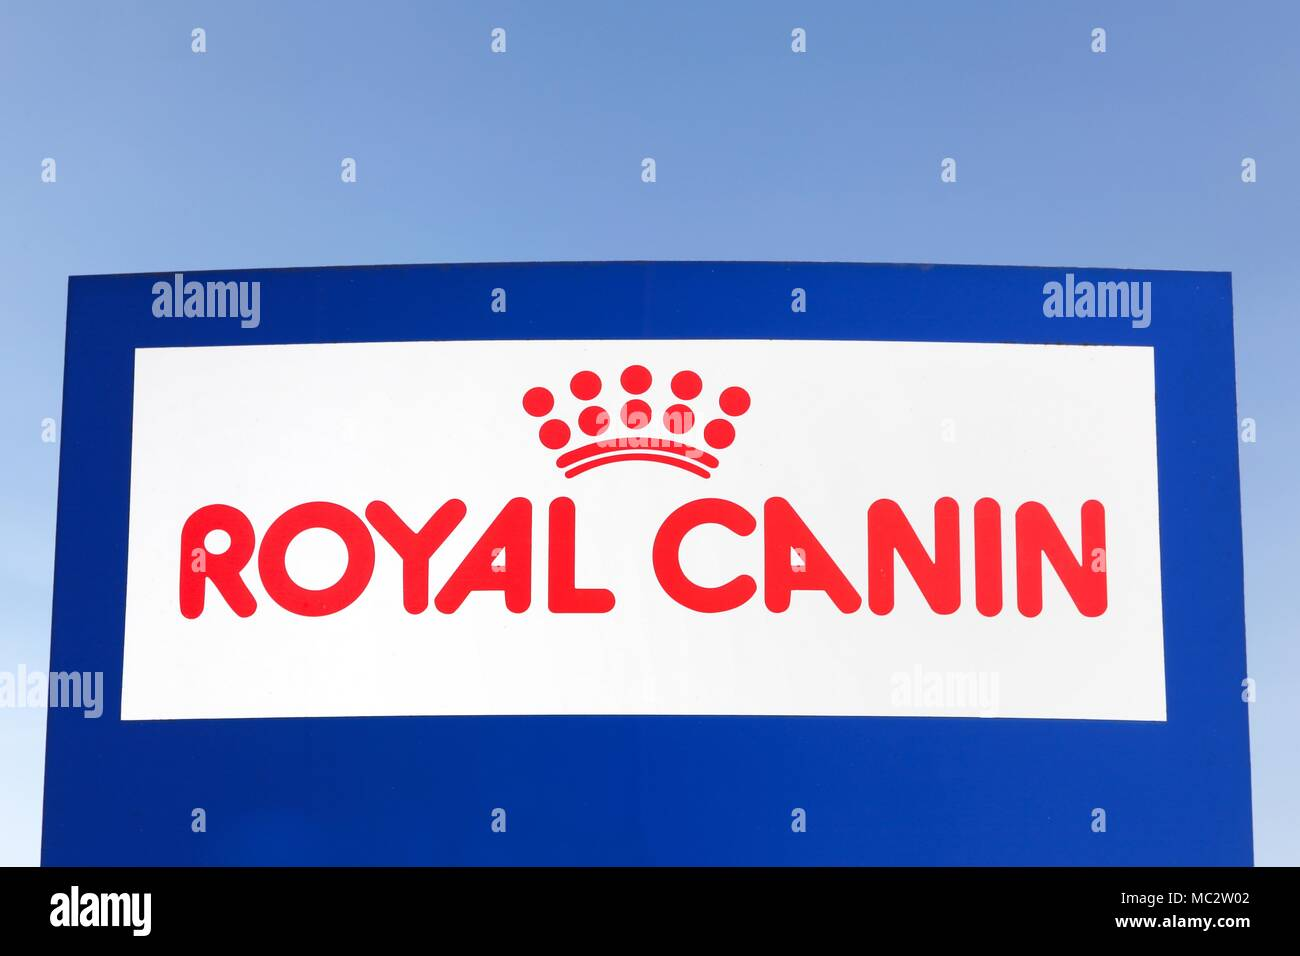 Royal Canin Stock Photos & Royal Canin Stock Images - Alamy